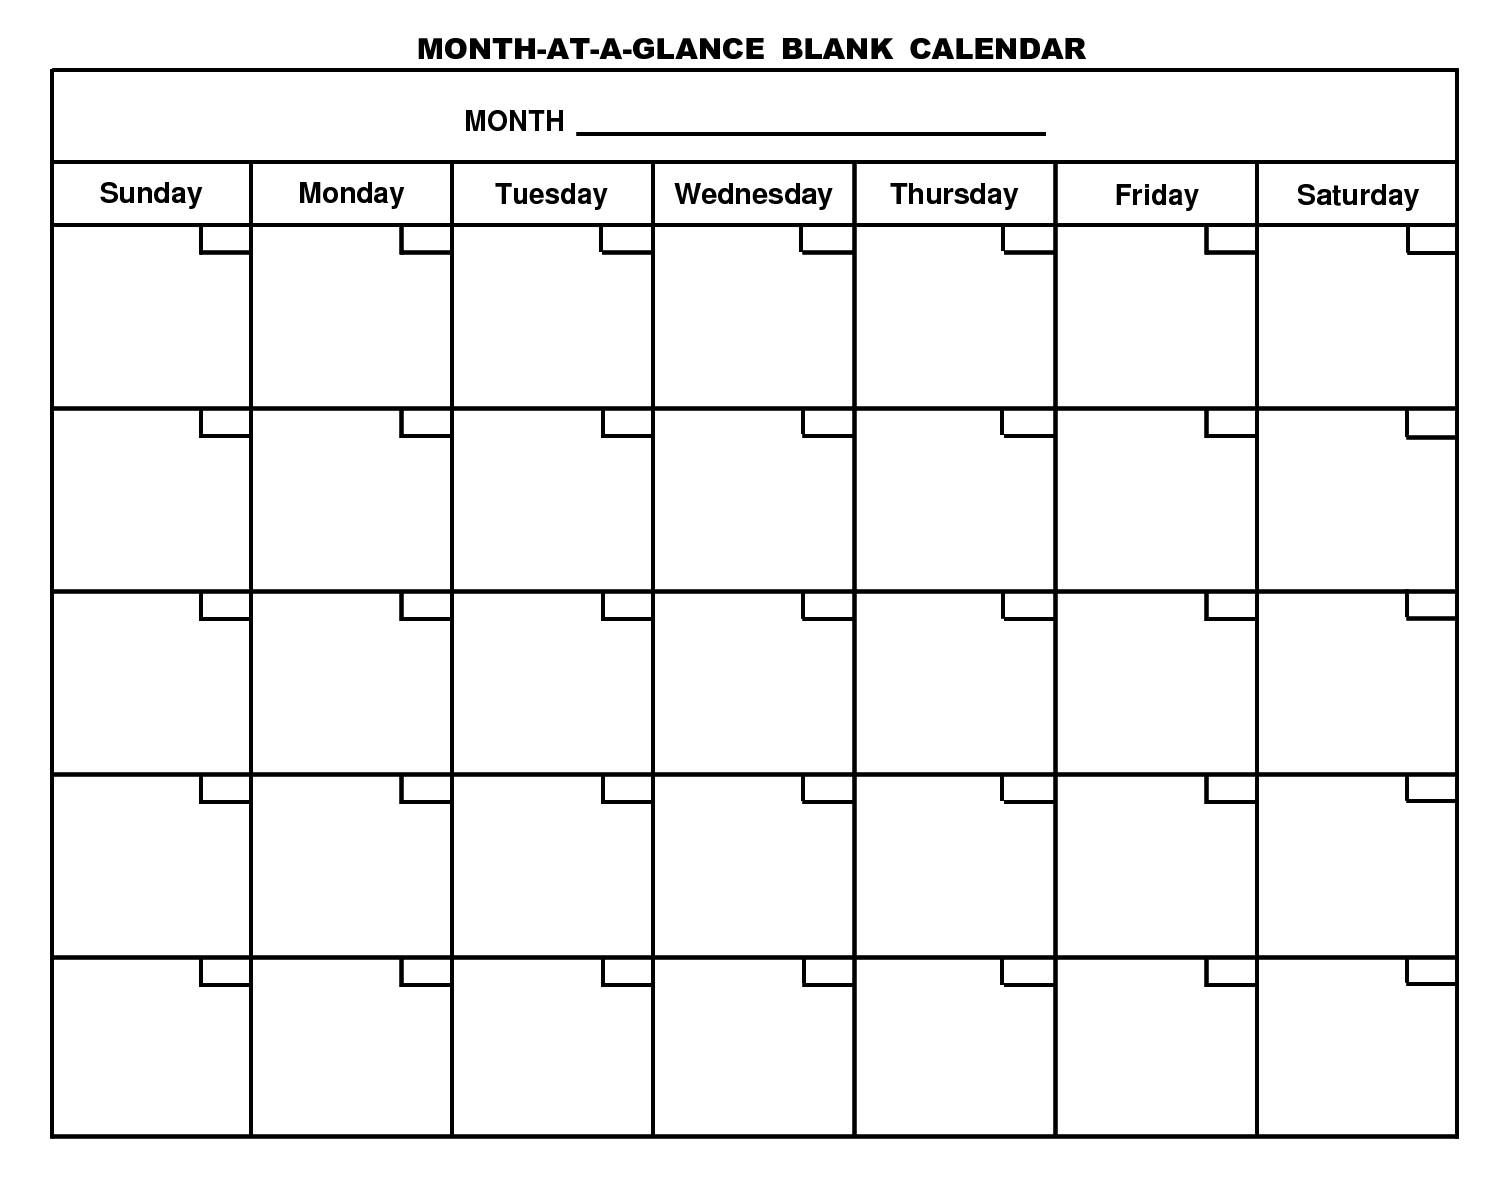 Month At A Glance Blank Calendar Template - Atlantaauctionco Regarding Month At A Glance Blank Calendar Template